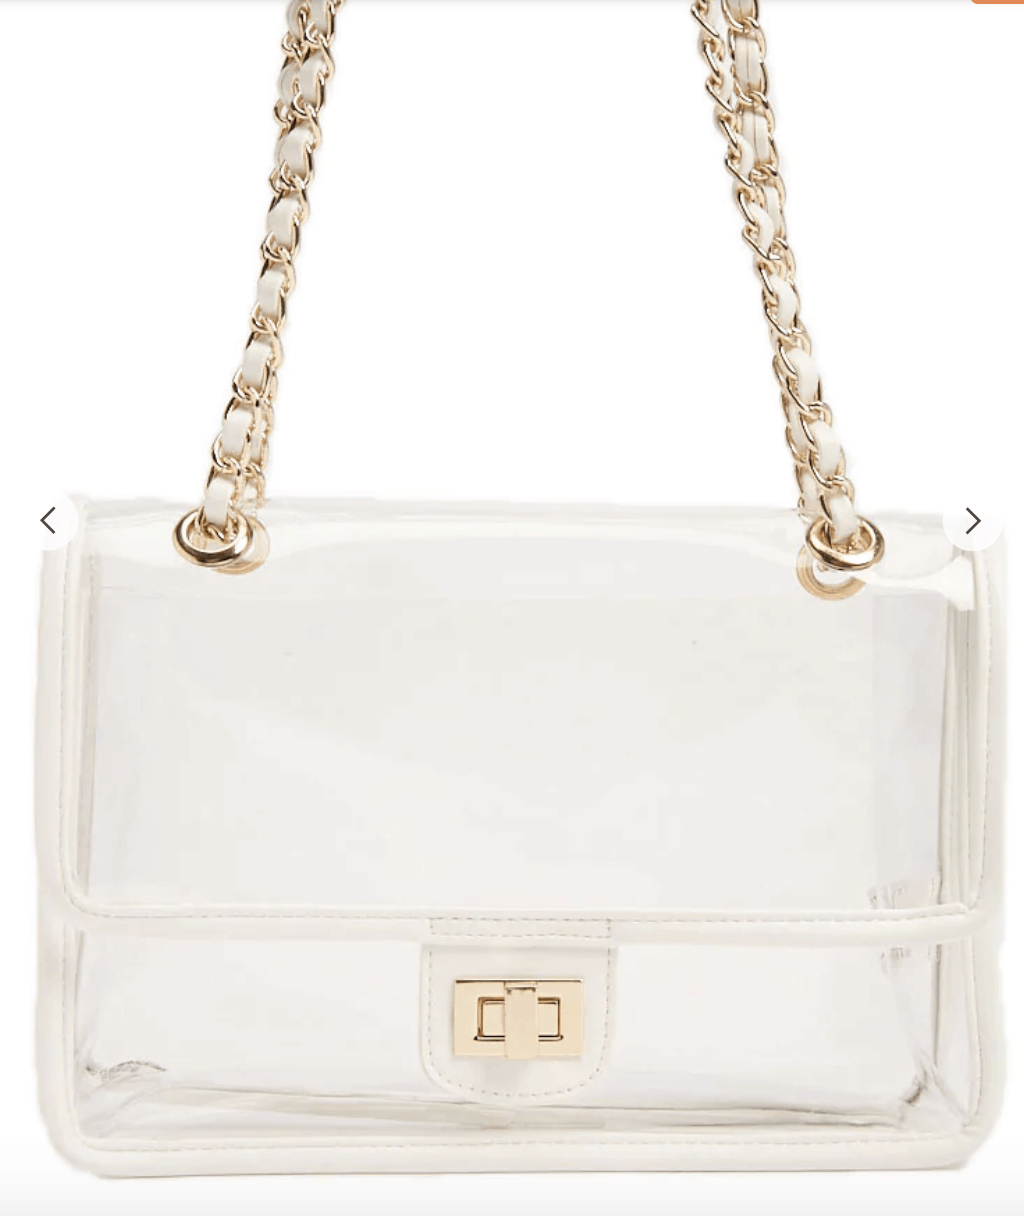 Clear handbag with chain strap - cute spring handbags on a budget